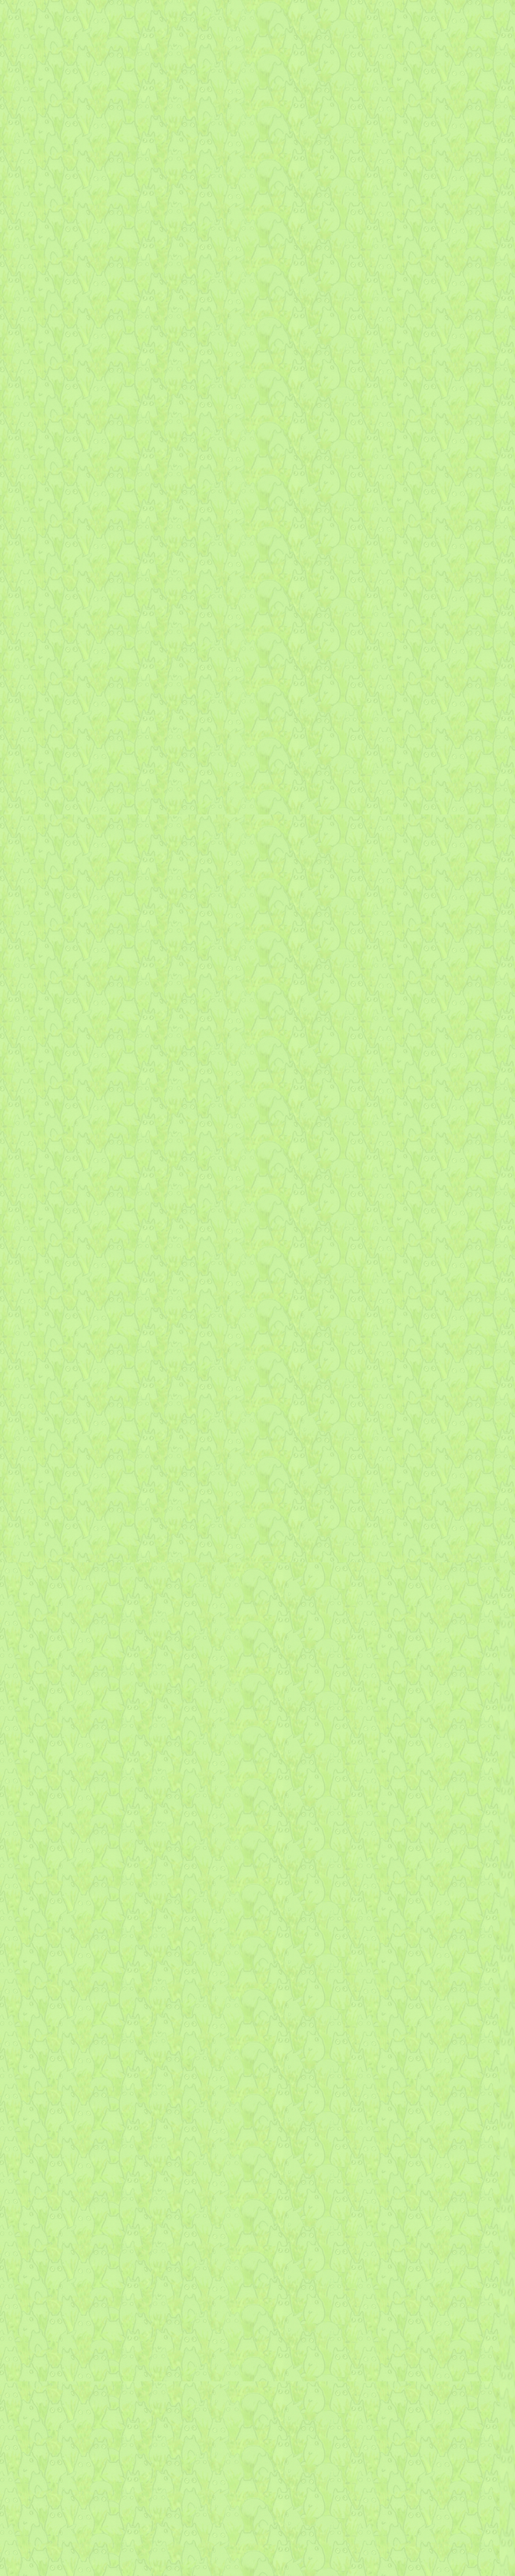 Totoro Pattern Background.png